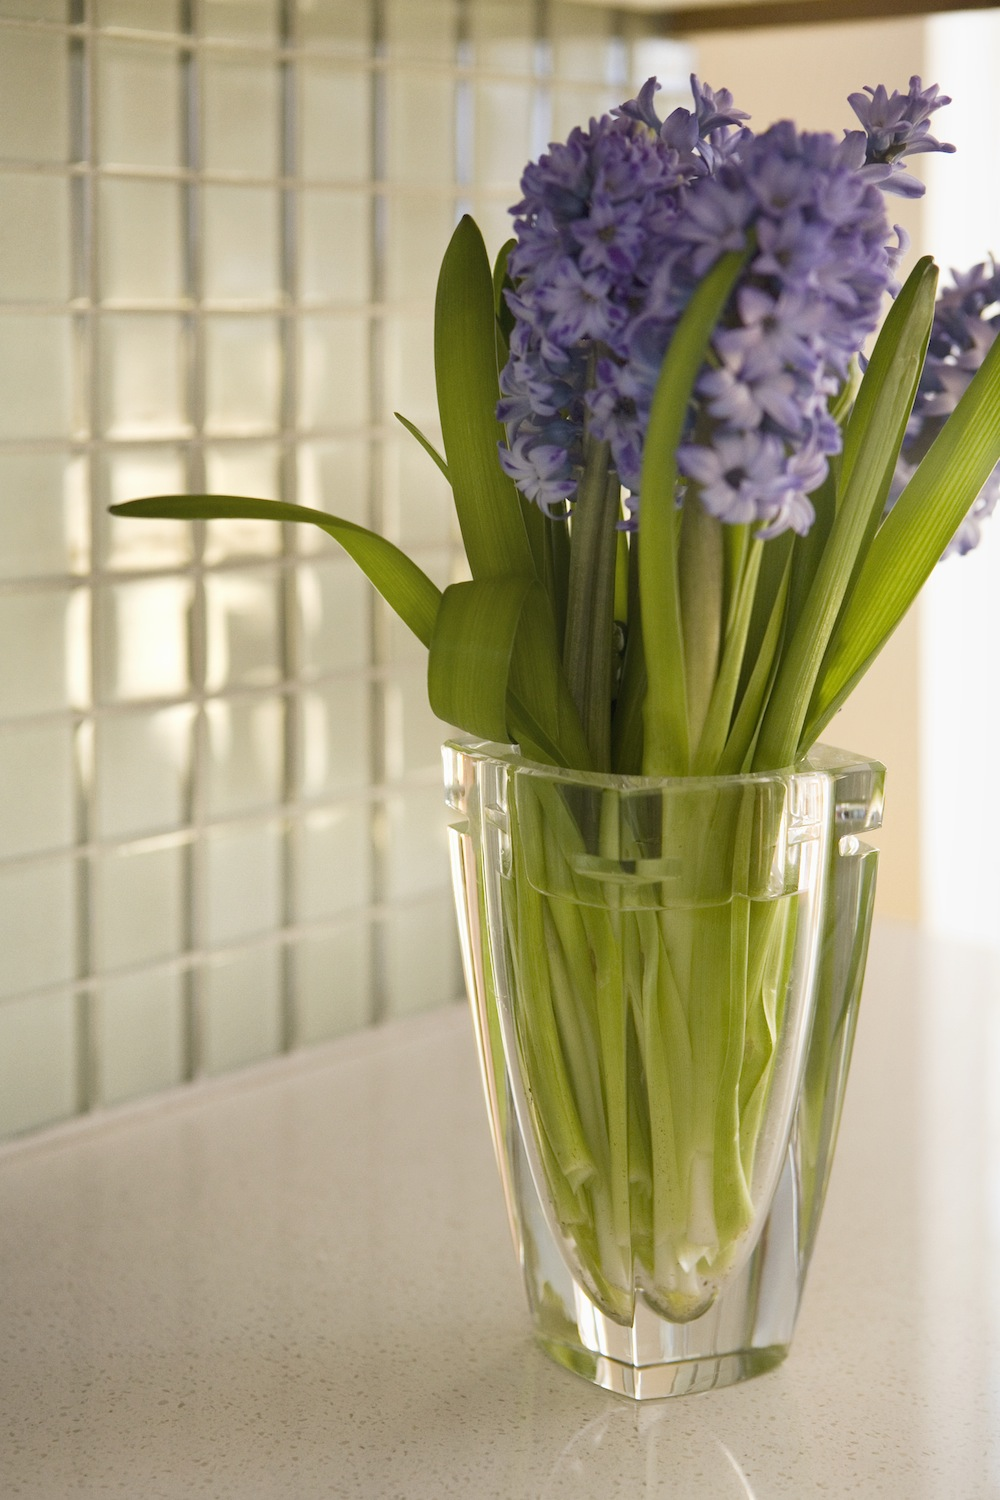 Borg Bath Flower detail.jpg